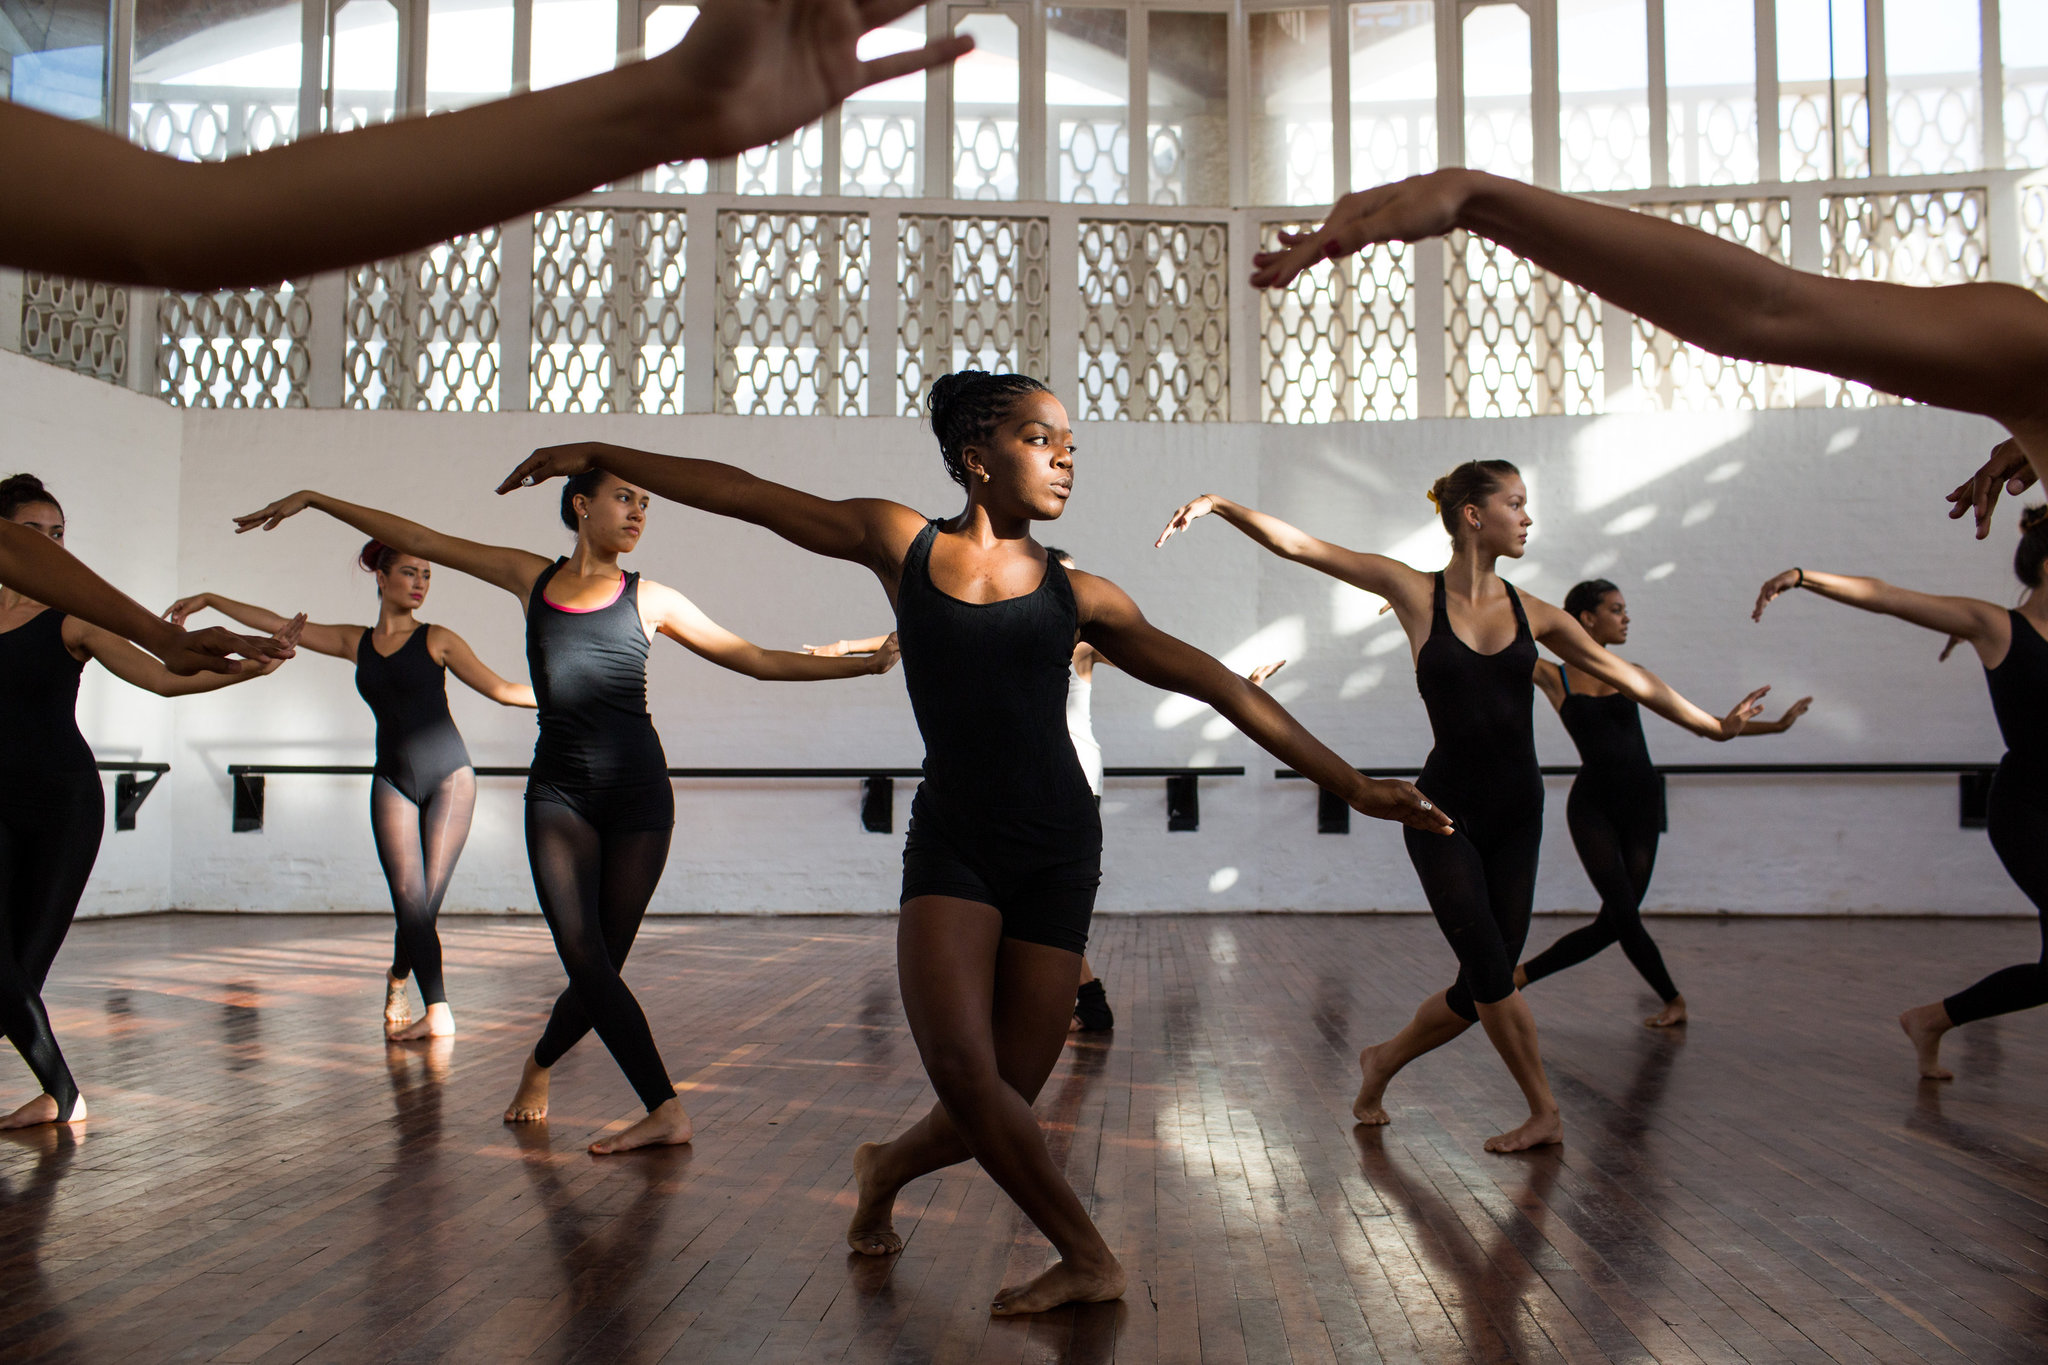 Things to consider before joining a dance studio